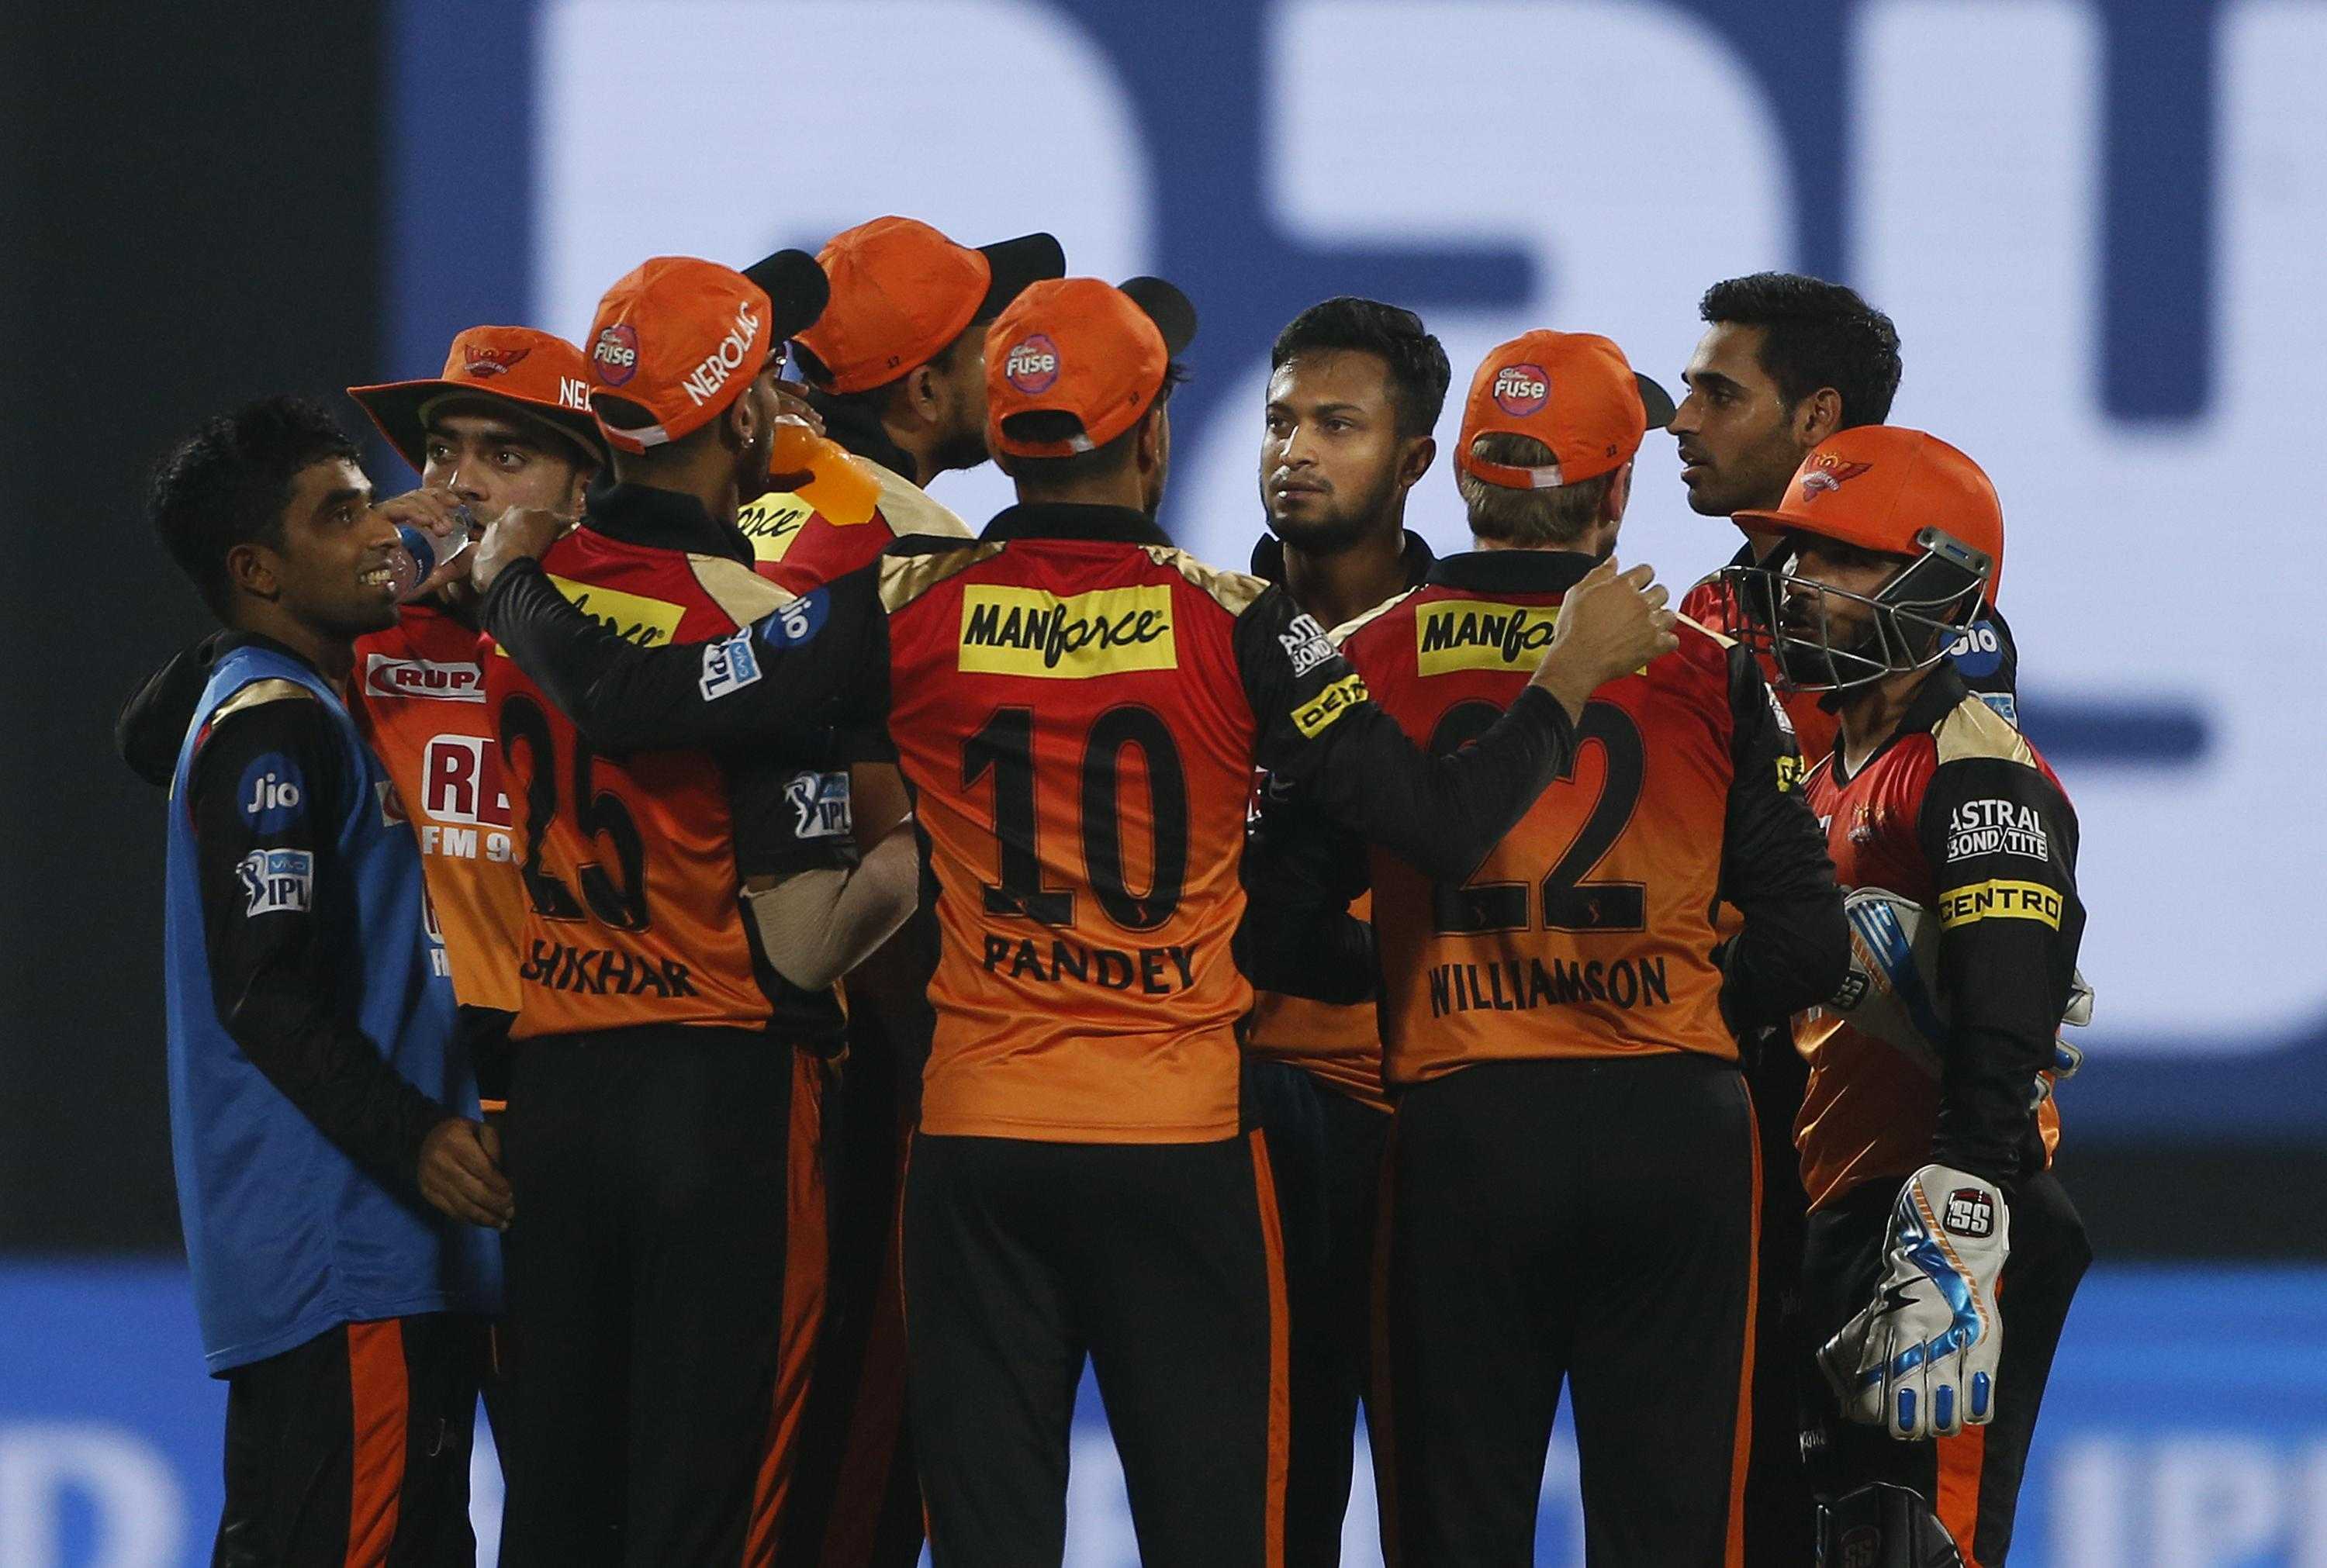 Sunrisers Hyderabad take on Chennai Super Kings after finishing top of the IPL points table